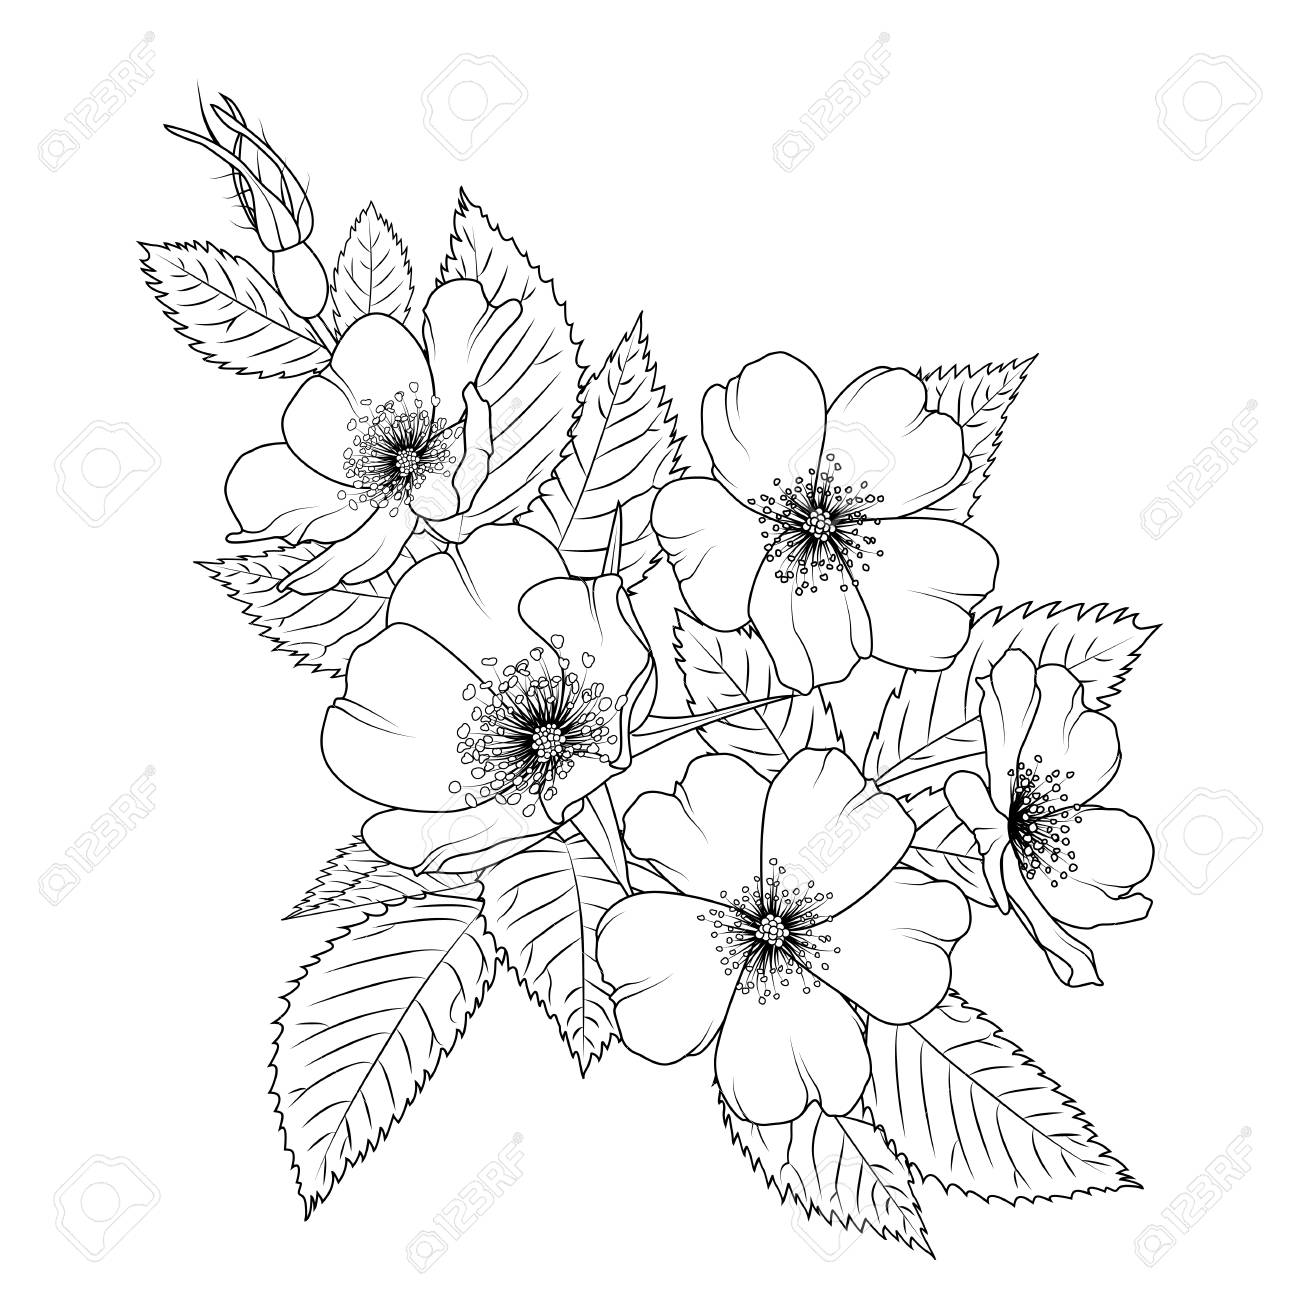 Vector wild rose dog rose rosa canina blooming herb flowers with leaves black outline sketch drawing isolated on white background